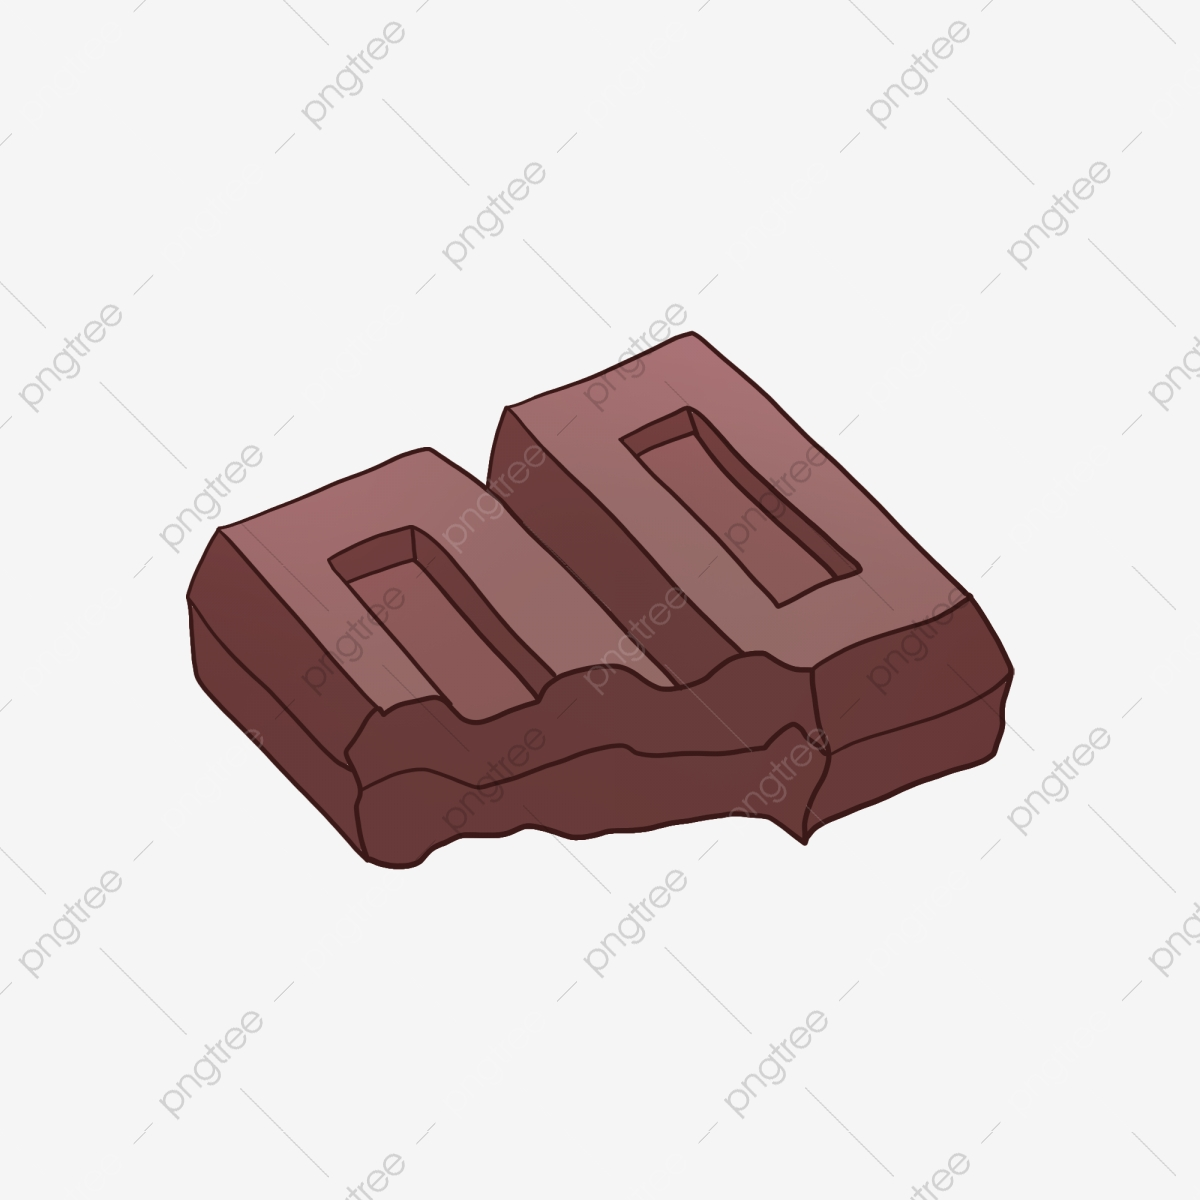 Two chocolate bars, Ice cream Chocolate bar, chocolate transparent  background PNG clipart | HiClipart